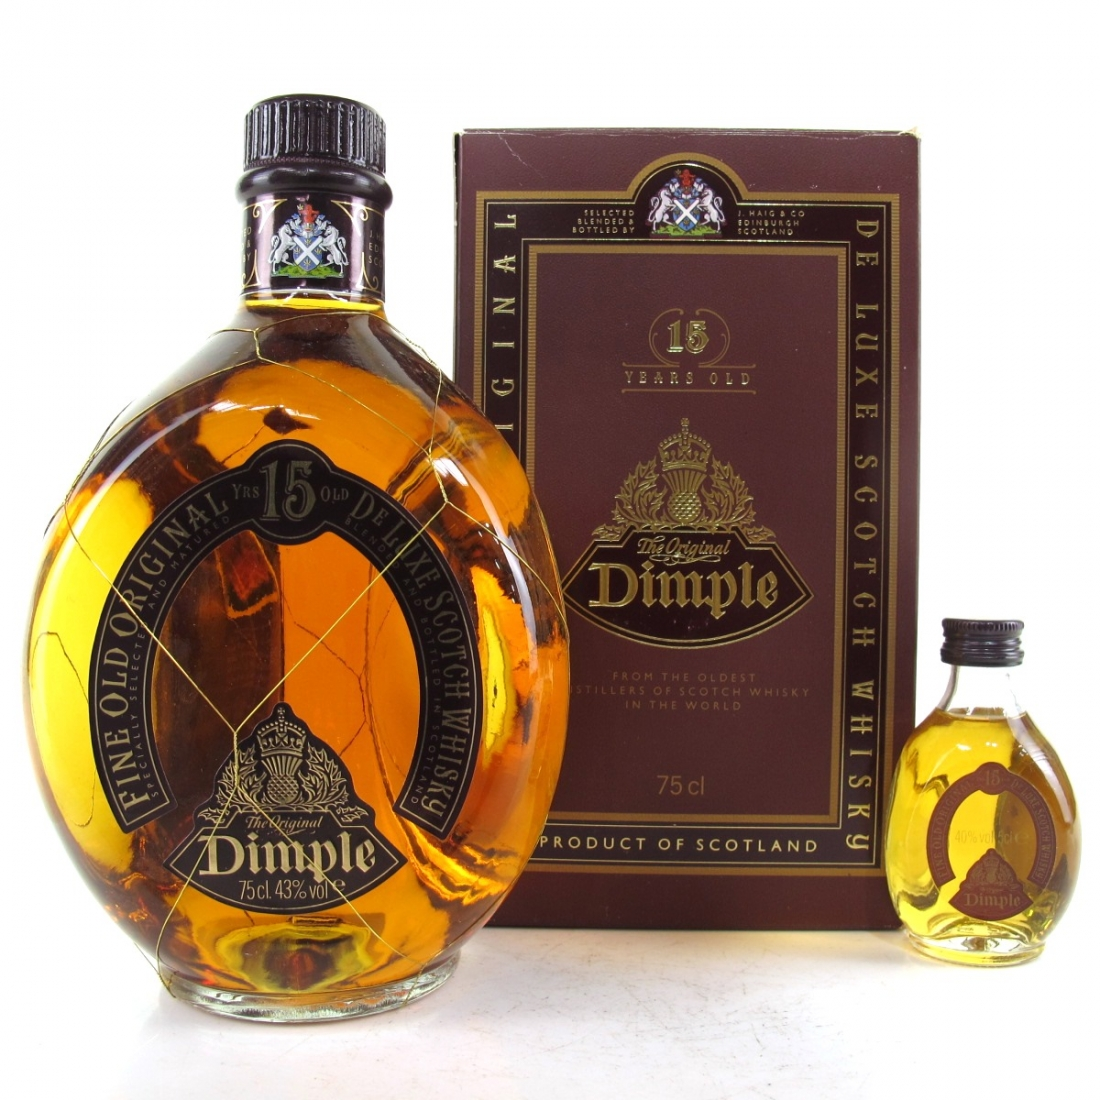 Haig's Dimple 15 Year Old 75cl / with Miniature 5cl